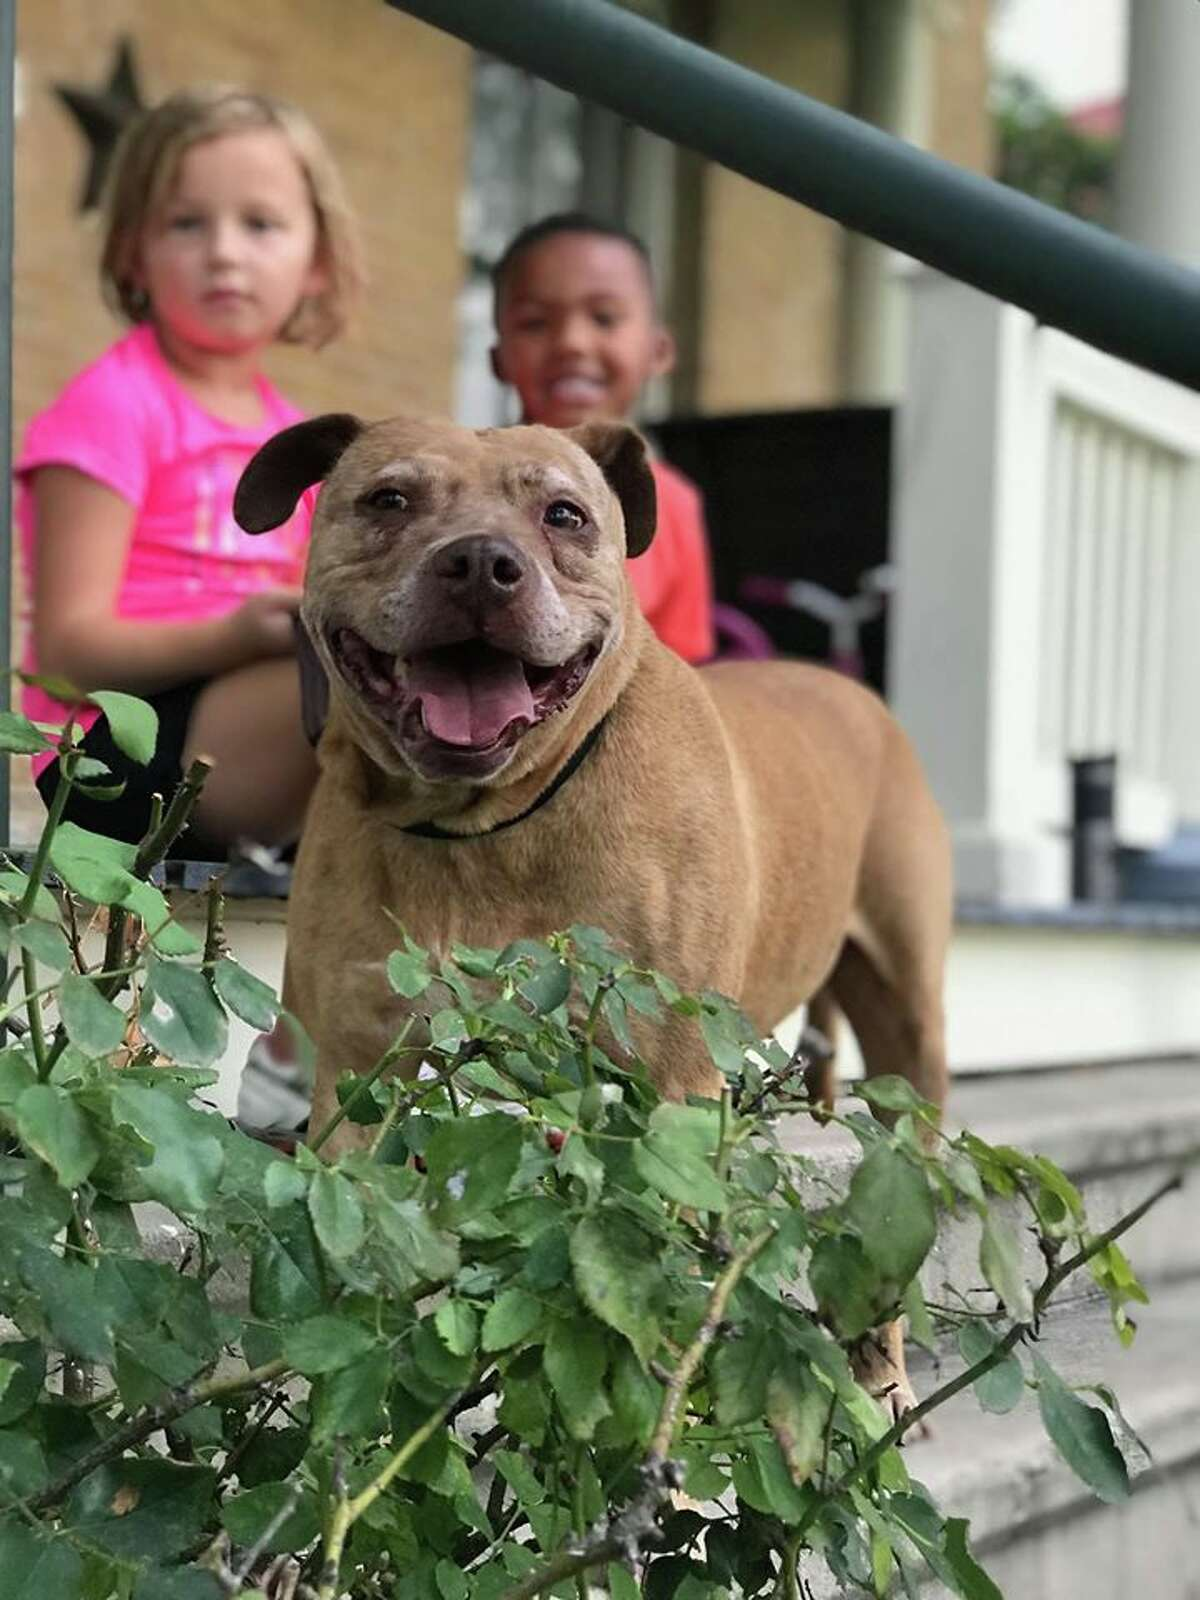 Meet Cheeky, a 12-year-old dog up for adoption at San Antonio Pets Alive!